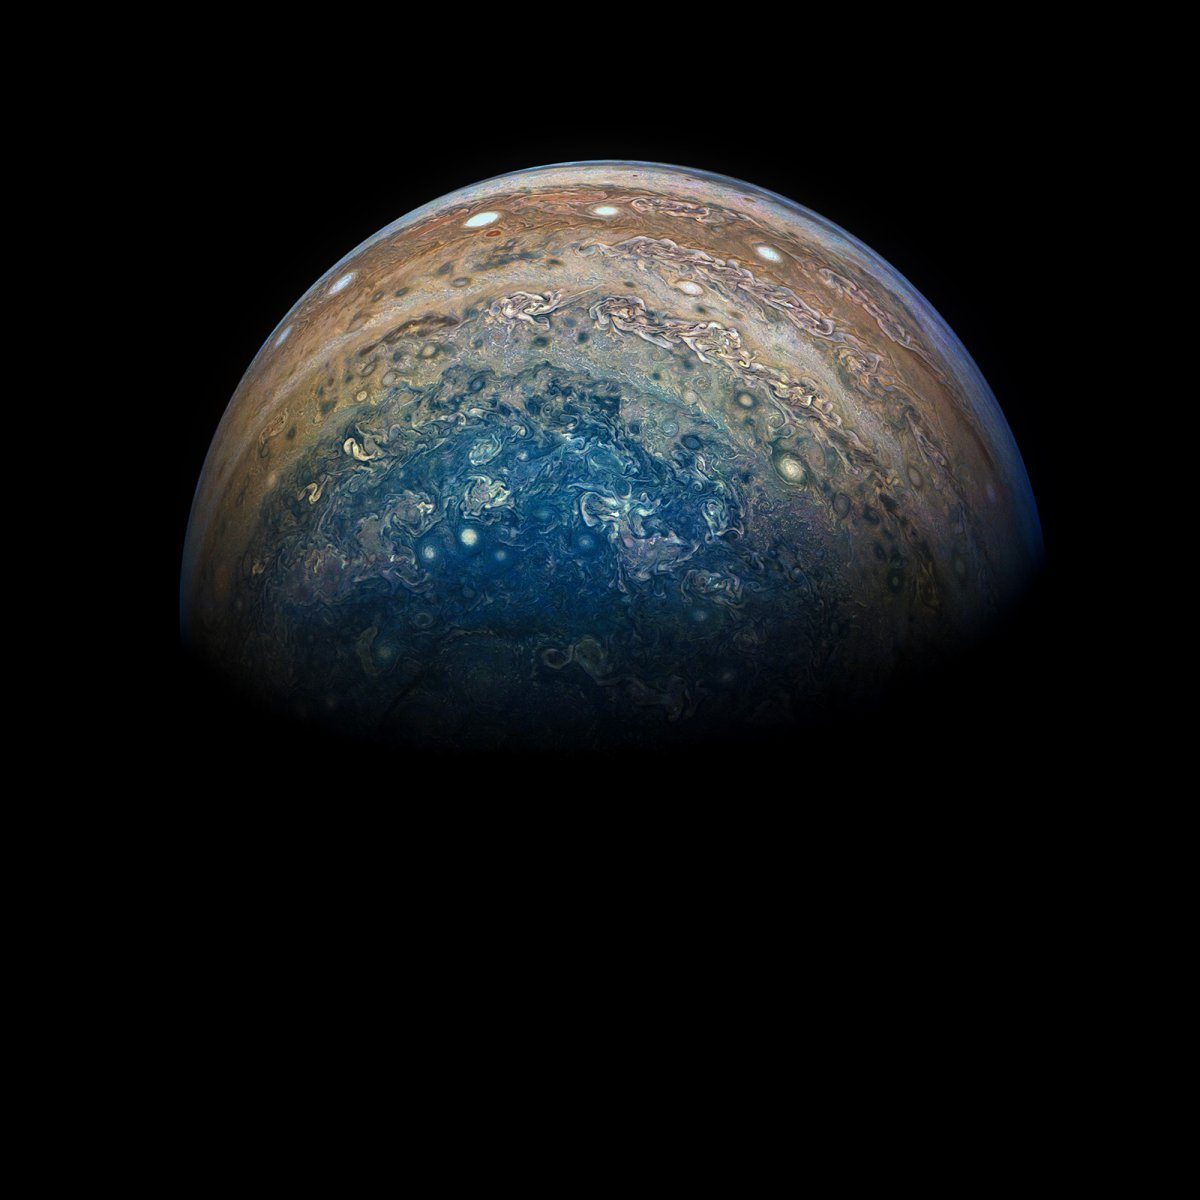 NASA Juno spacecraft takes stunning new images of clouds on Jupiter